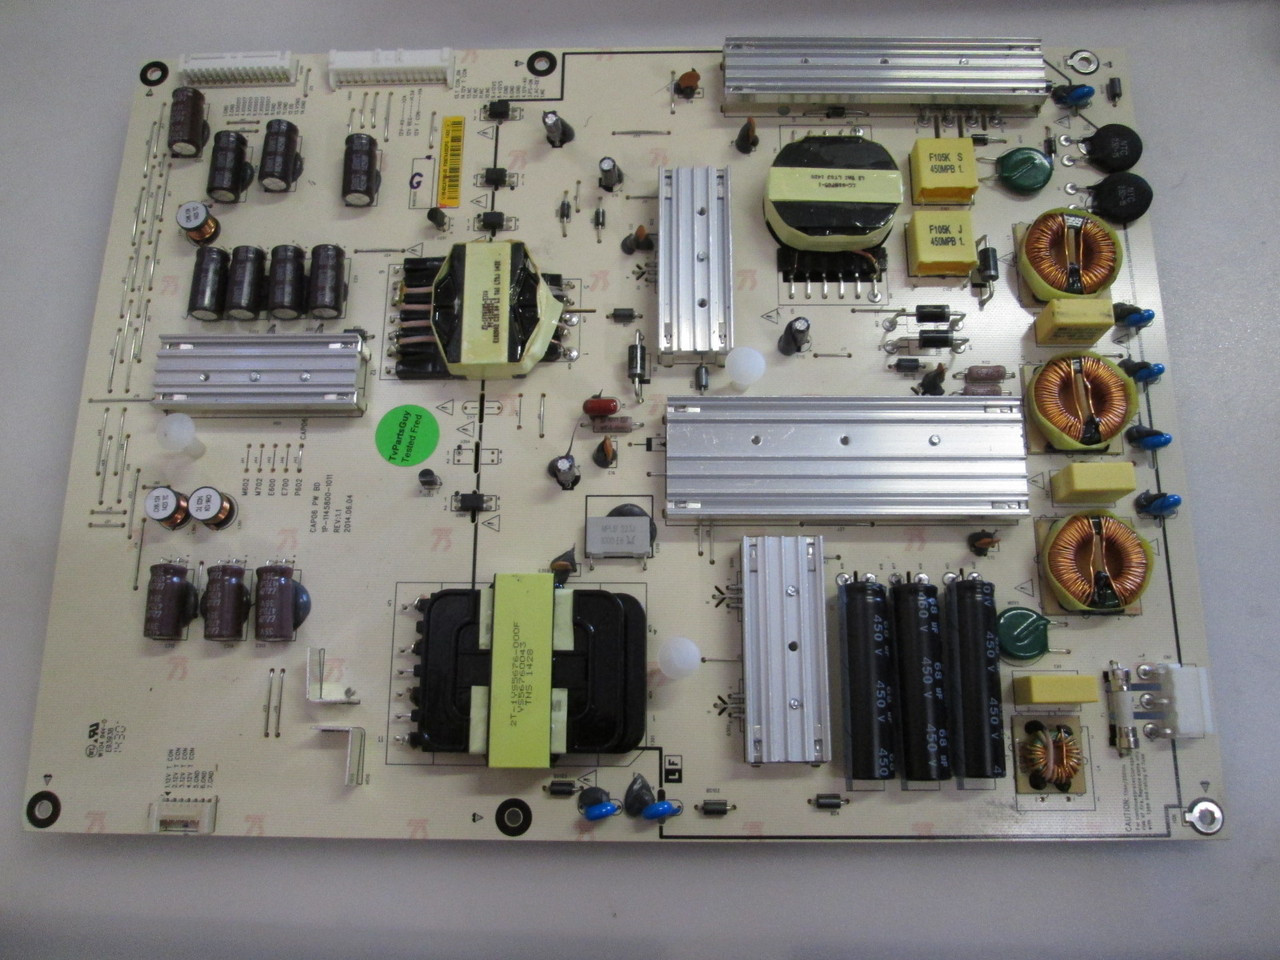 60E510E Power Supply Board 168P-P6L012-00 5800-P6L012-0020